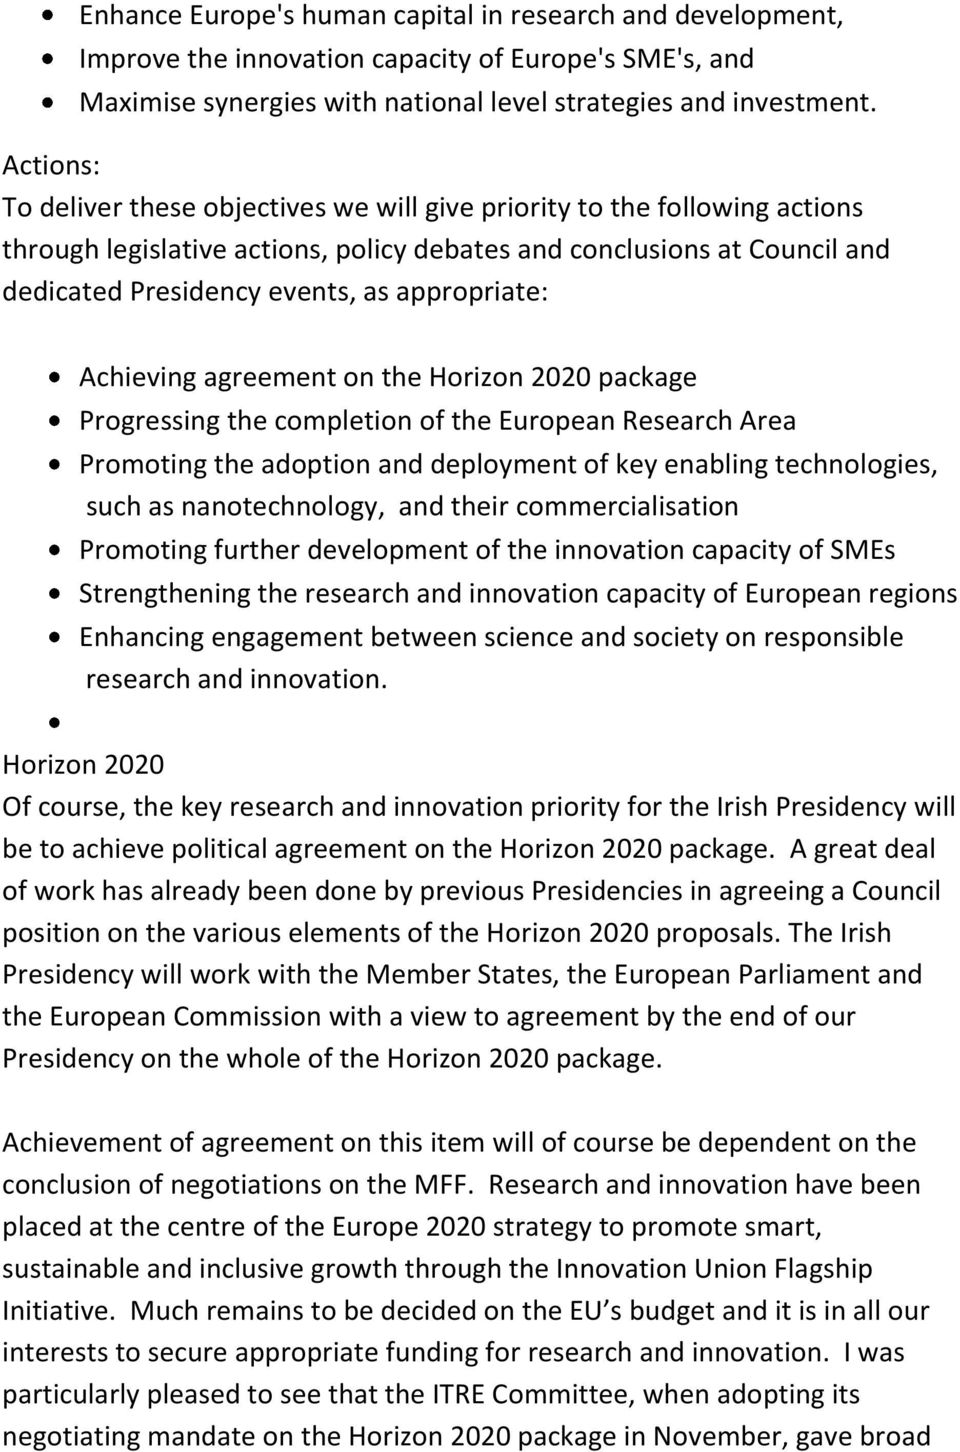 appropriate: Achieving agreement on the Horizon 2020 package Progressing the completion of the European Research Area Promoting the adoption and deployment of key enabling technologies, such as